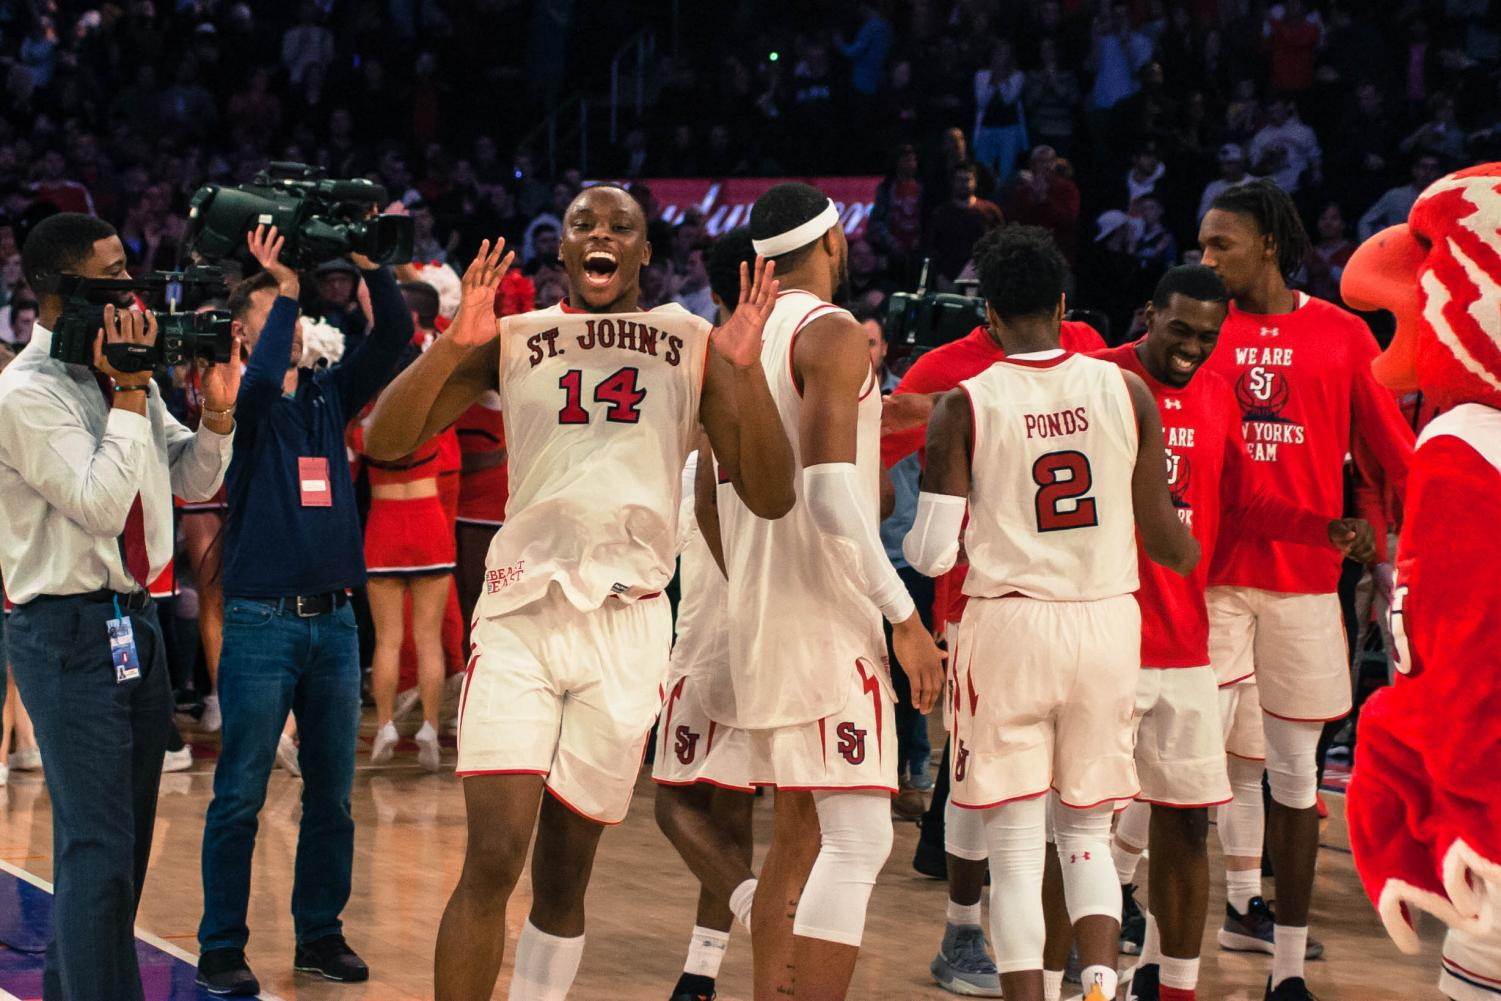 Mustapha Heron chipped in 19 points on Sunday helping to lead St. John's against rival Villanova at Madison Square Garden.